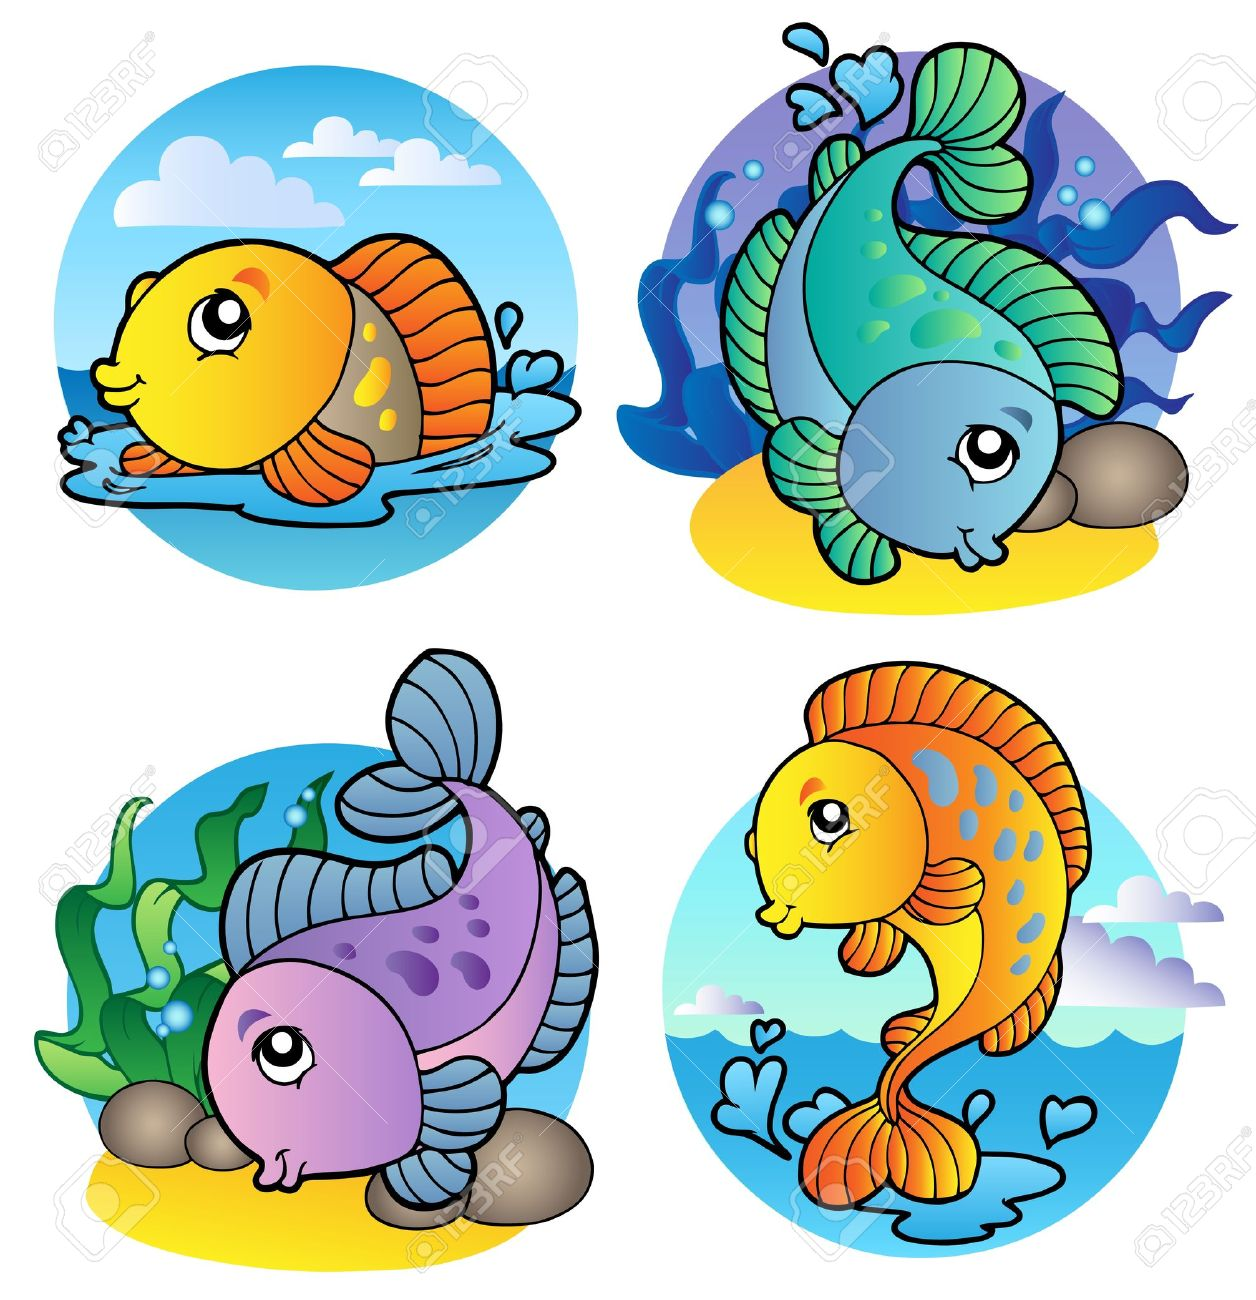 Freshwater fish clipart - Various Freshwater Fishes 1 Illustration Stock Vector 8266222